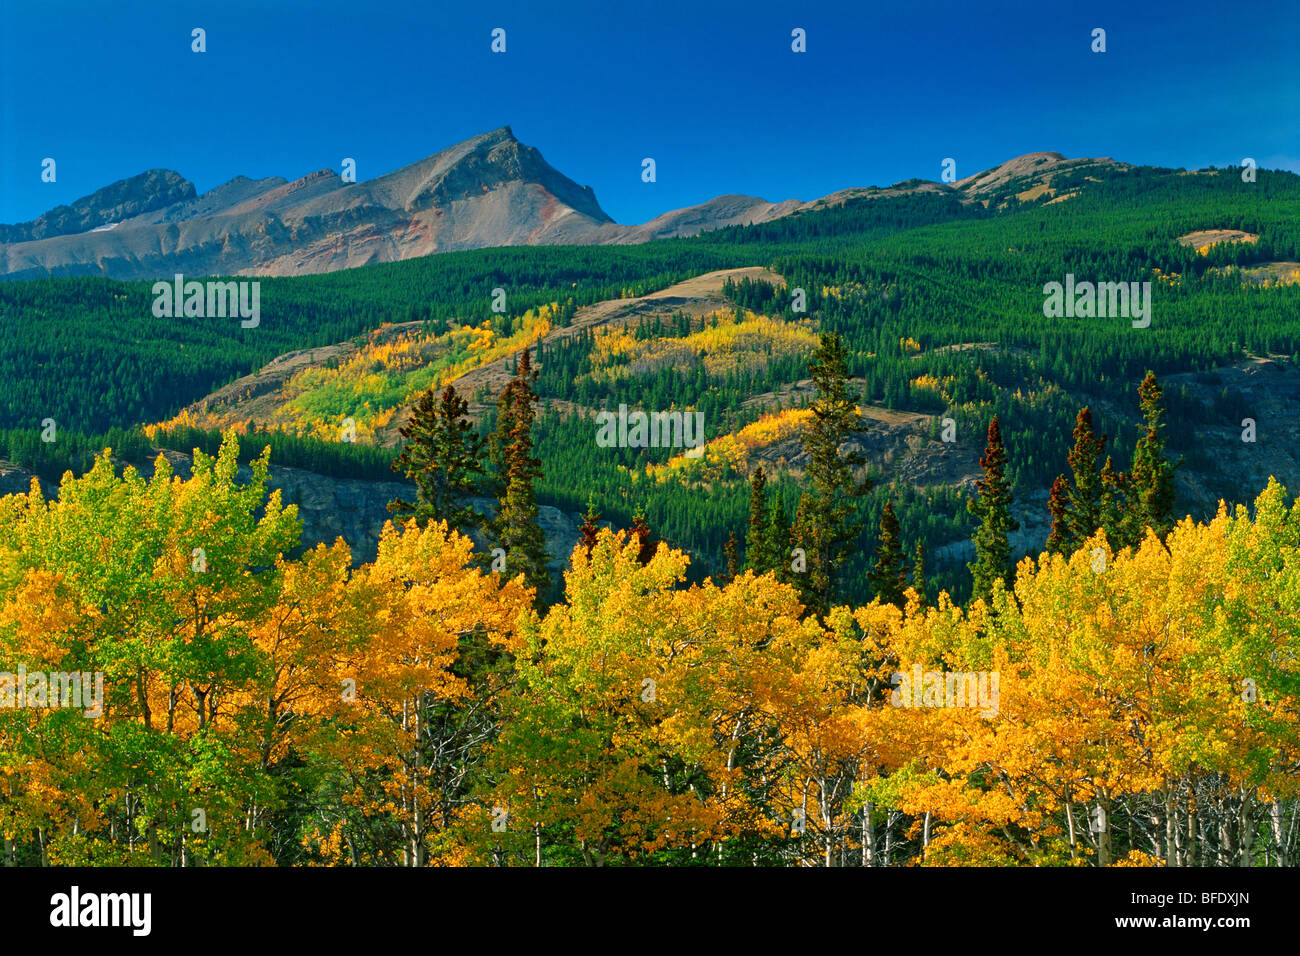 Autumn scenic in the Canadian Rockies, David Thompson Highway, Alberta, Canada - Stock Image